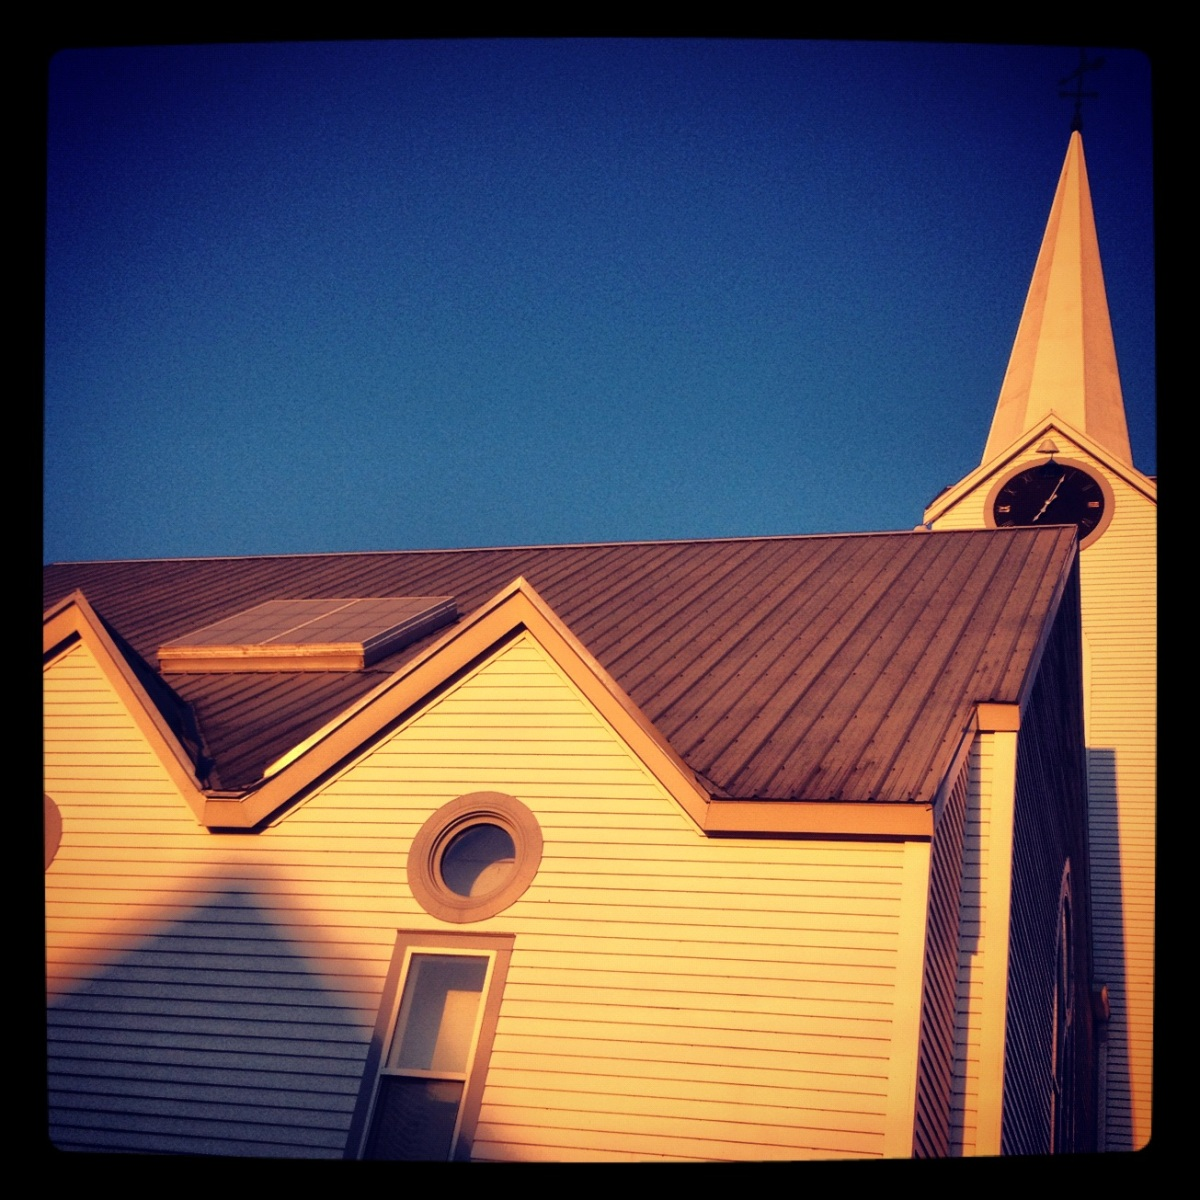 Chuch sunset in Jeffersonville